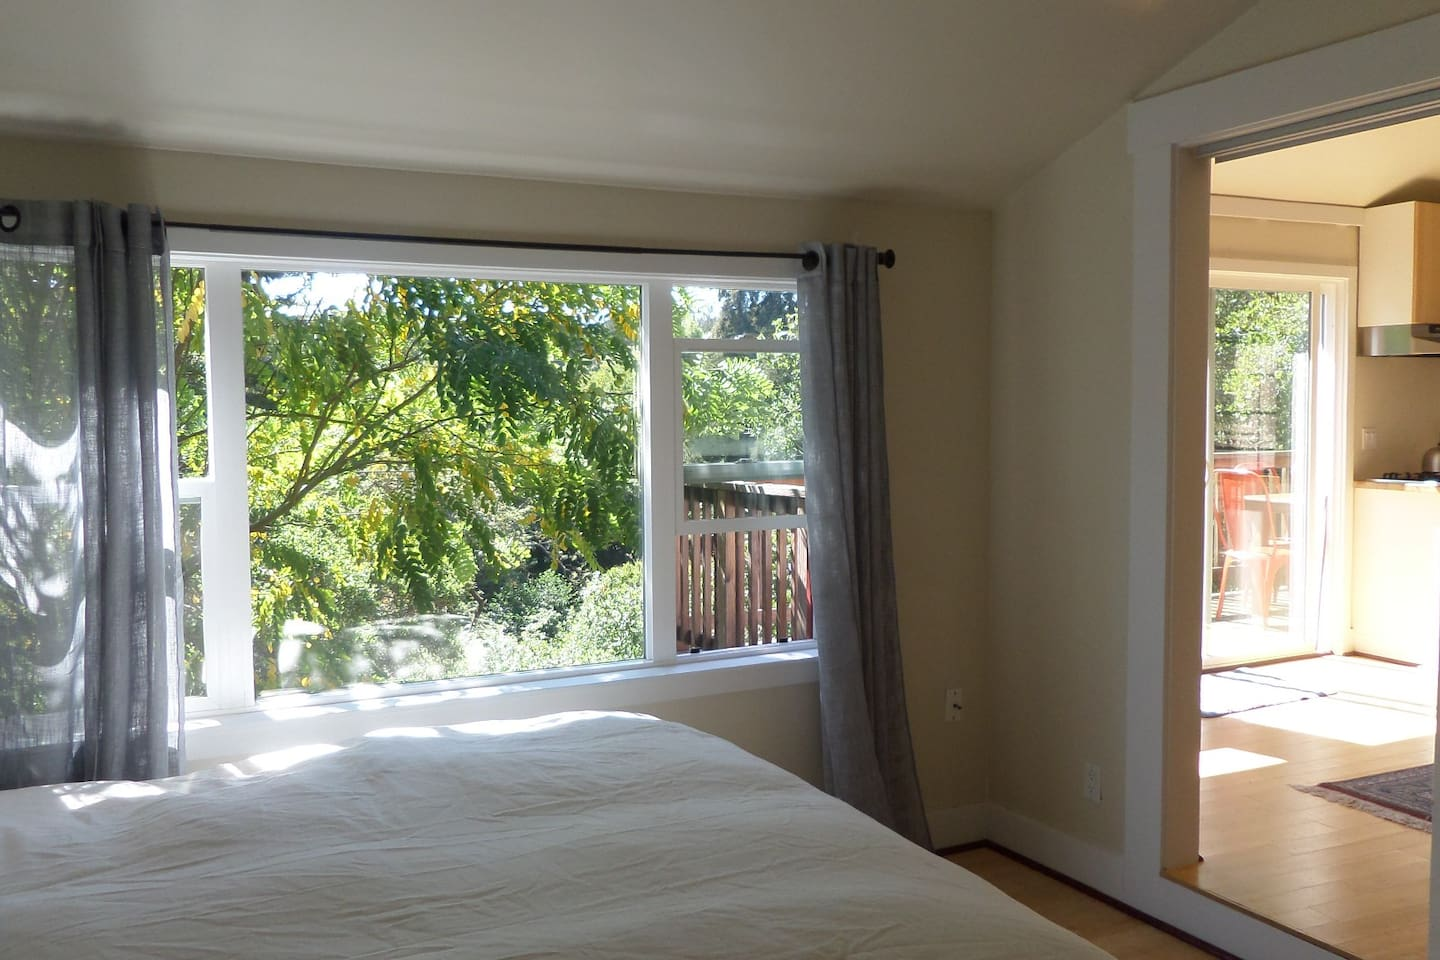 new bed: king sized, facing the serene view of trees  and sunshine....